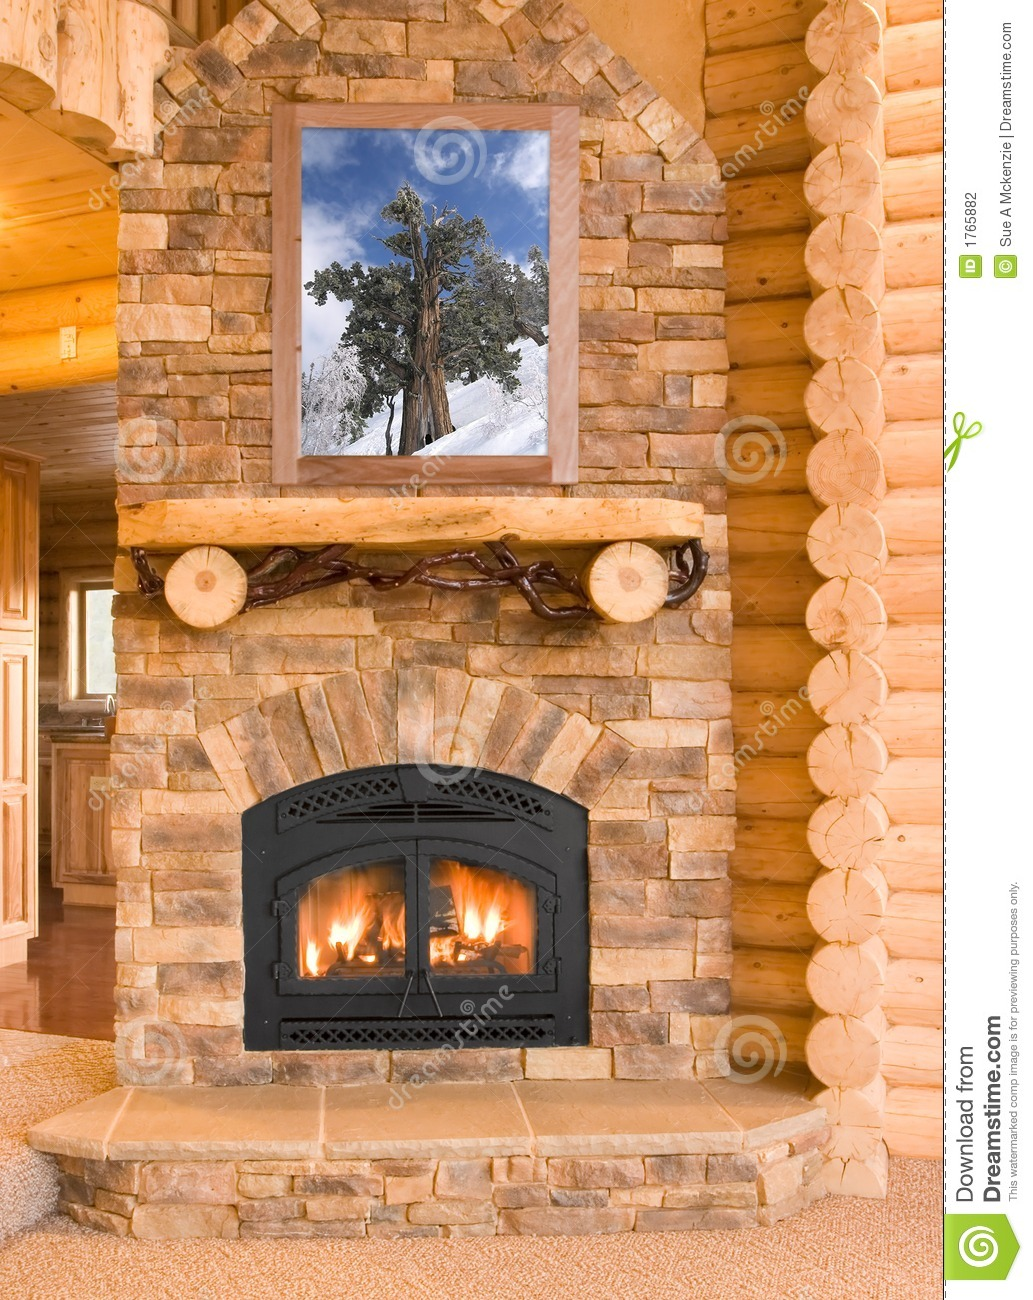 Log Cabin Home Interior With Warm Fireplace With Wood